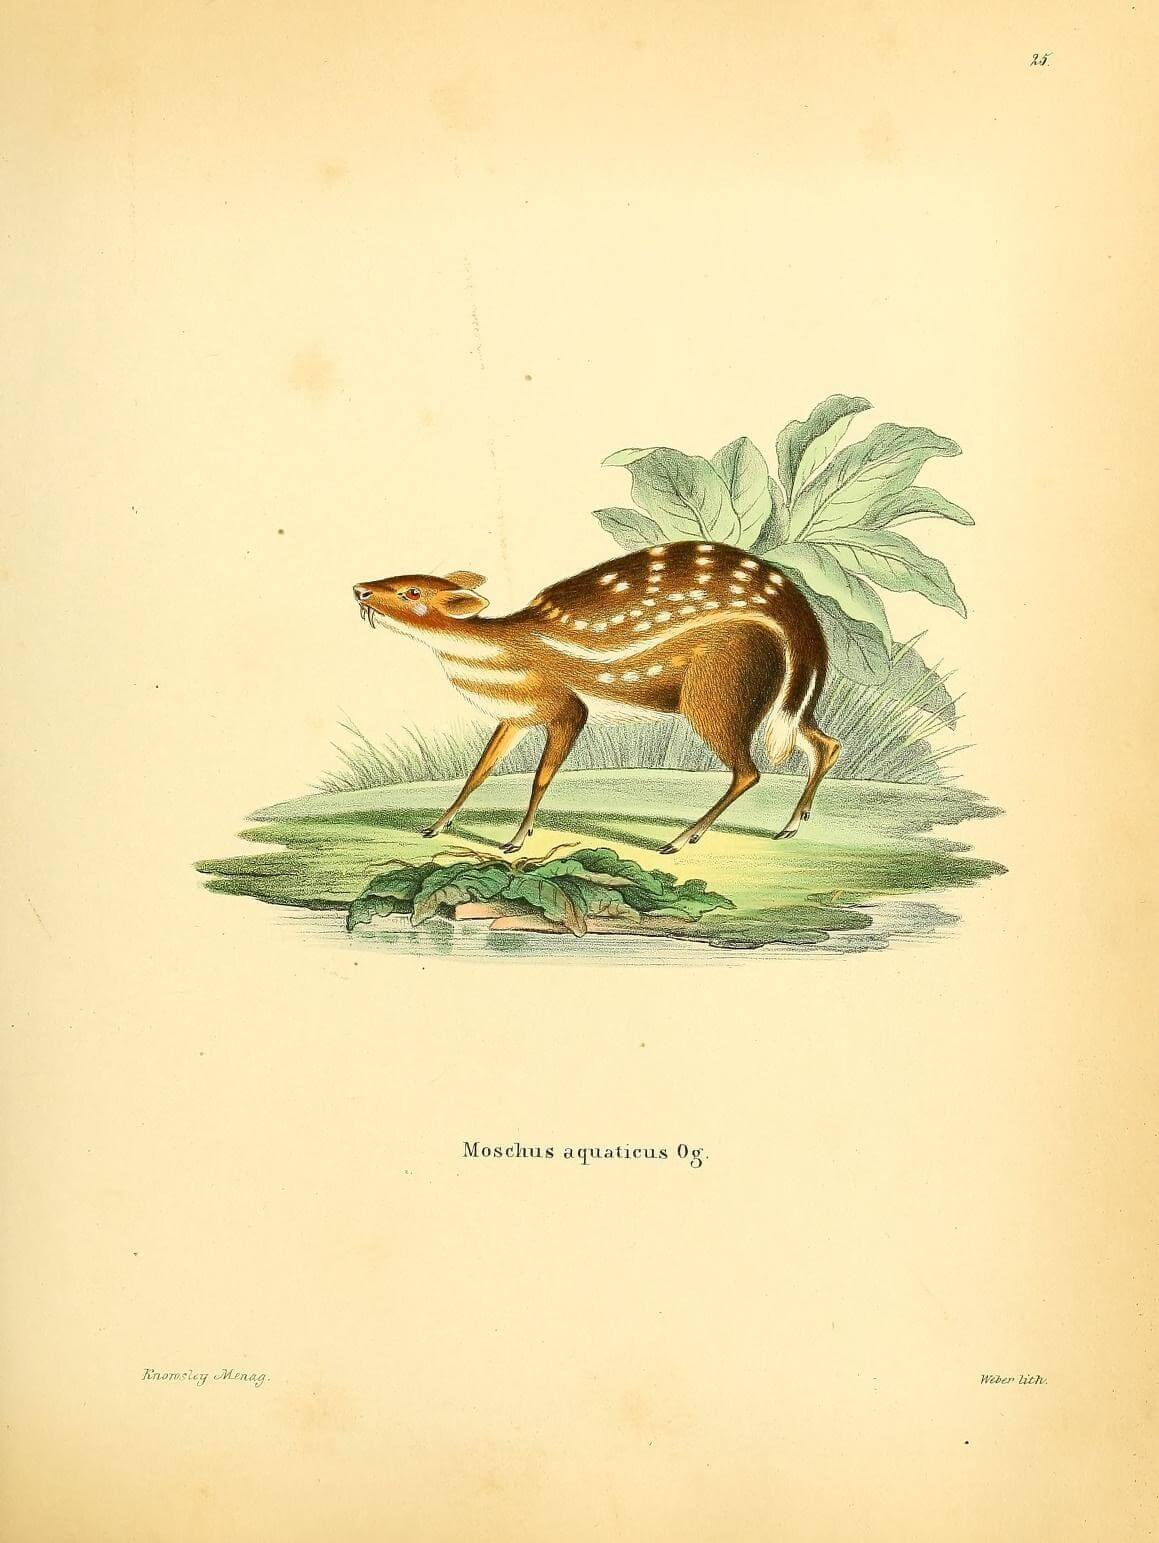 Dessin du chevrotain aquatique